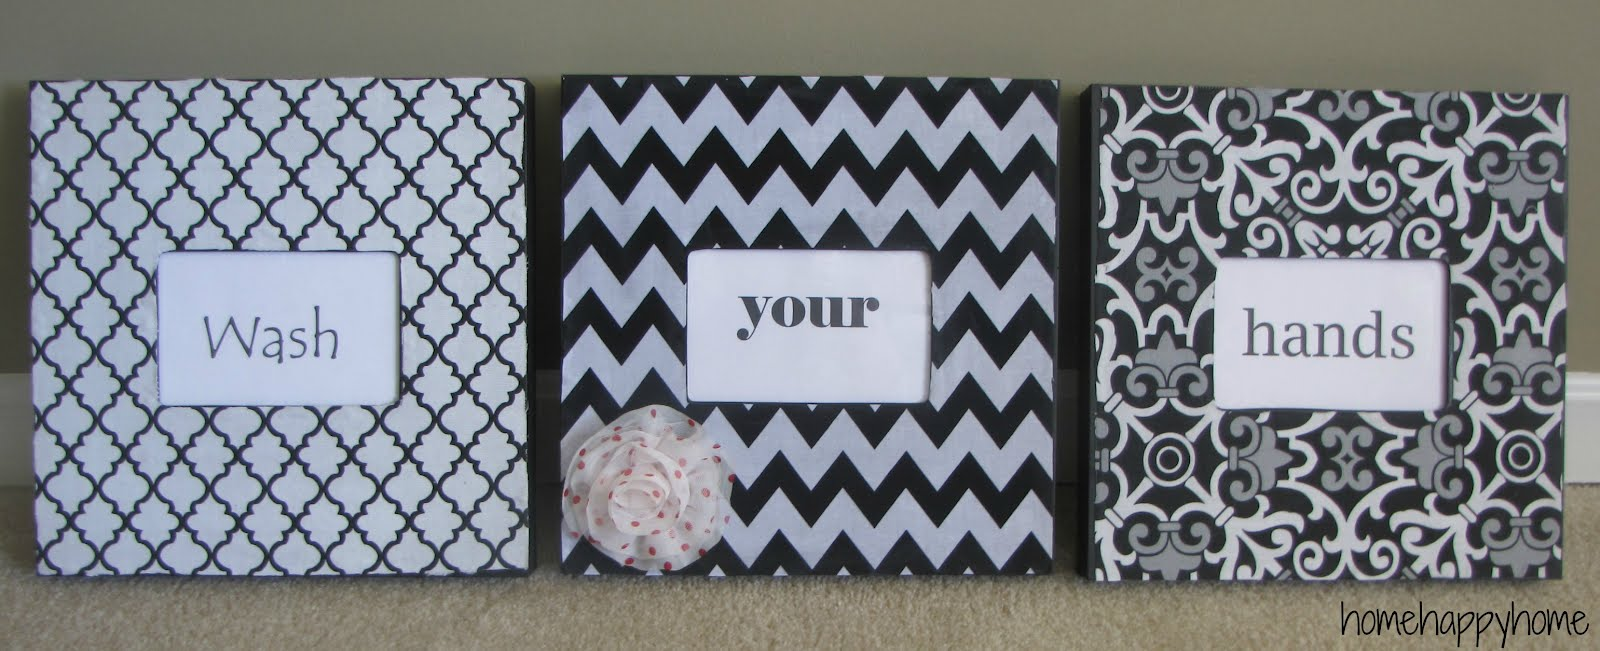 home happy home: Fabric covered frames